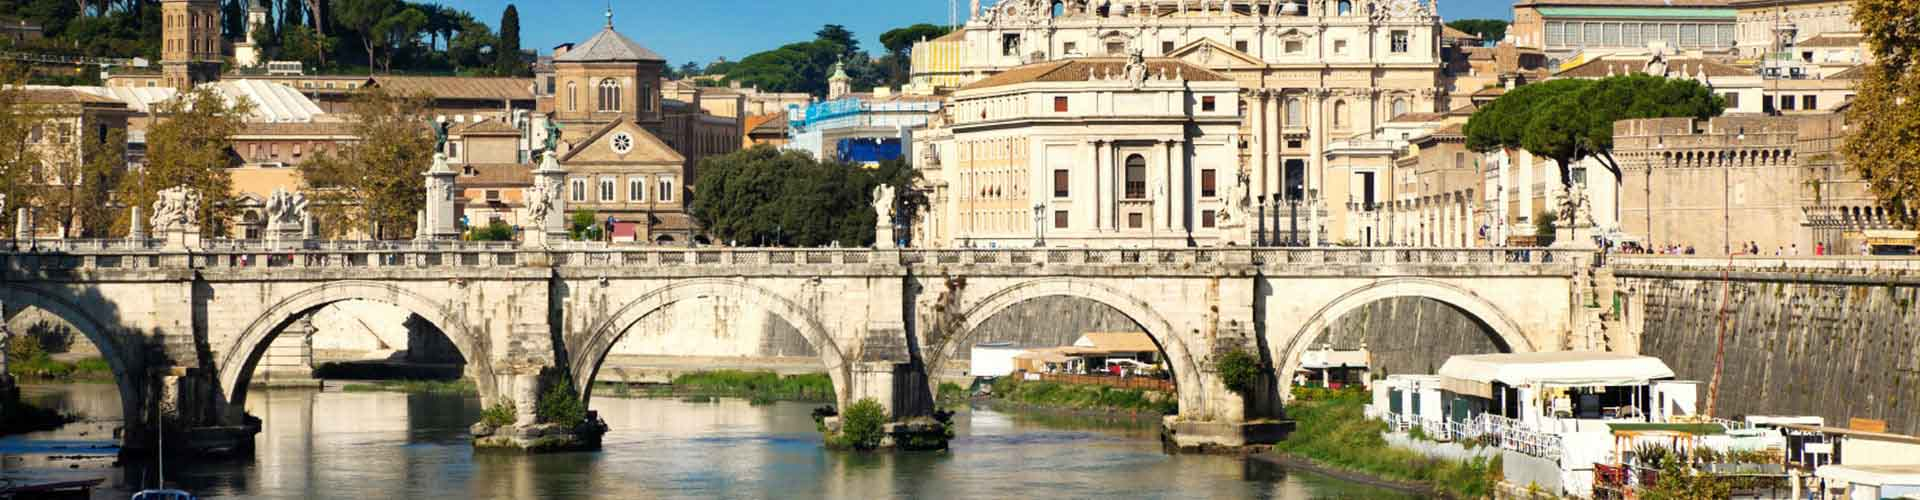 Rome – Hostels close to City Center. Maps for Rome, Photos and Reviews for each hostel in Rome.